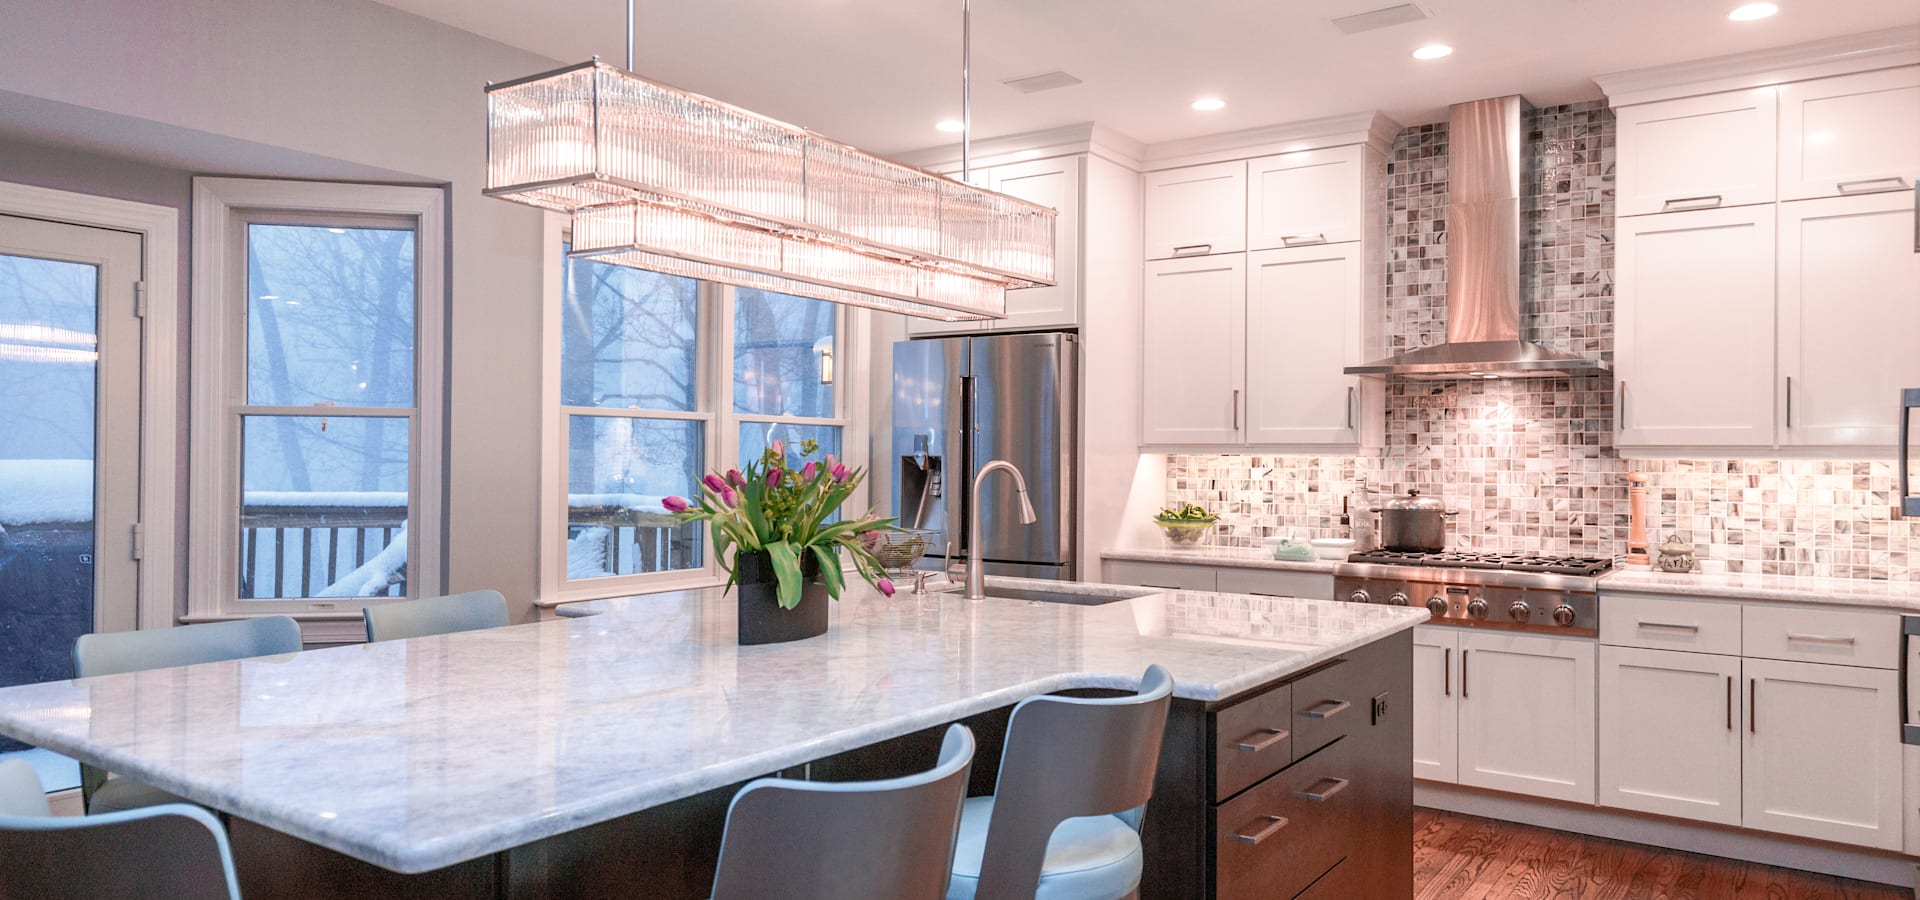 PERFORMANCE KITCHENS & HOME